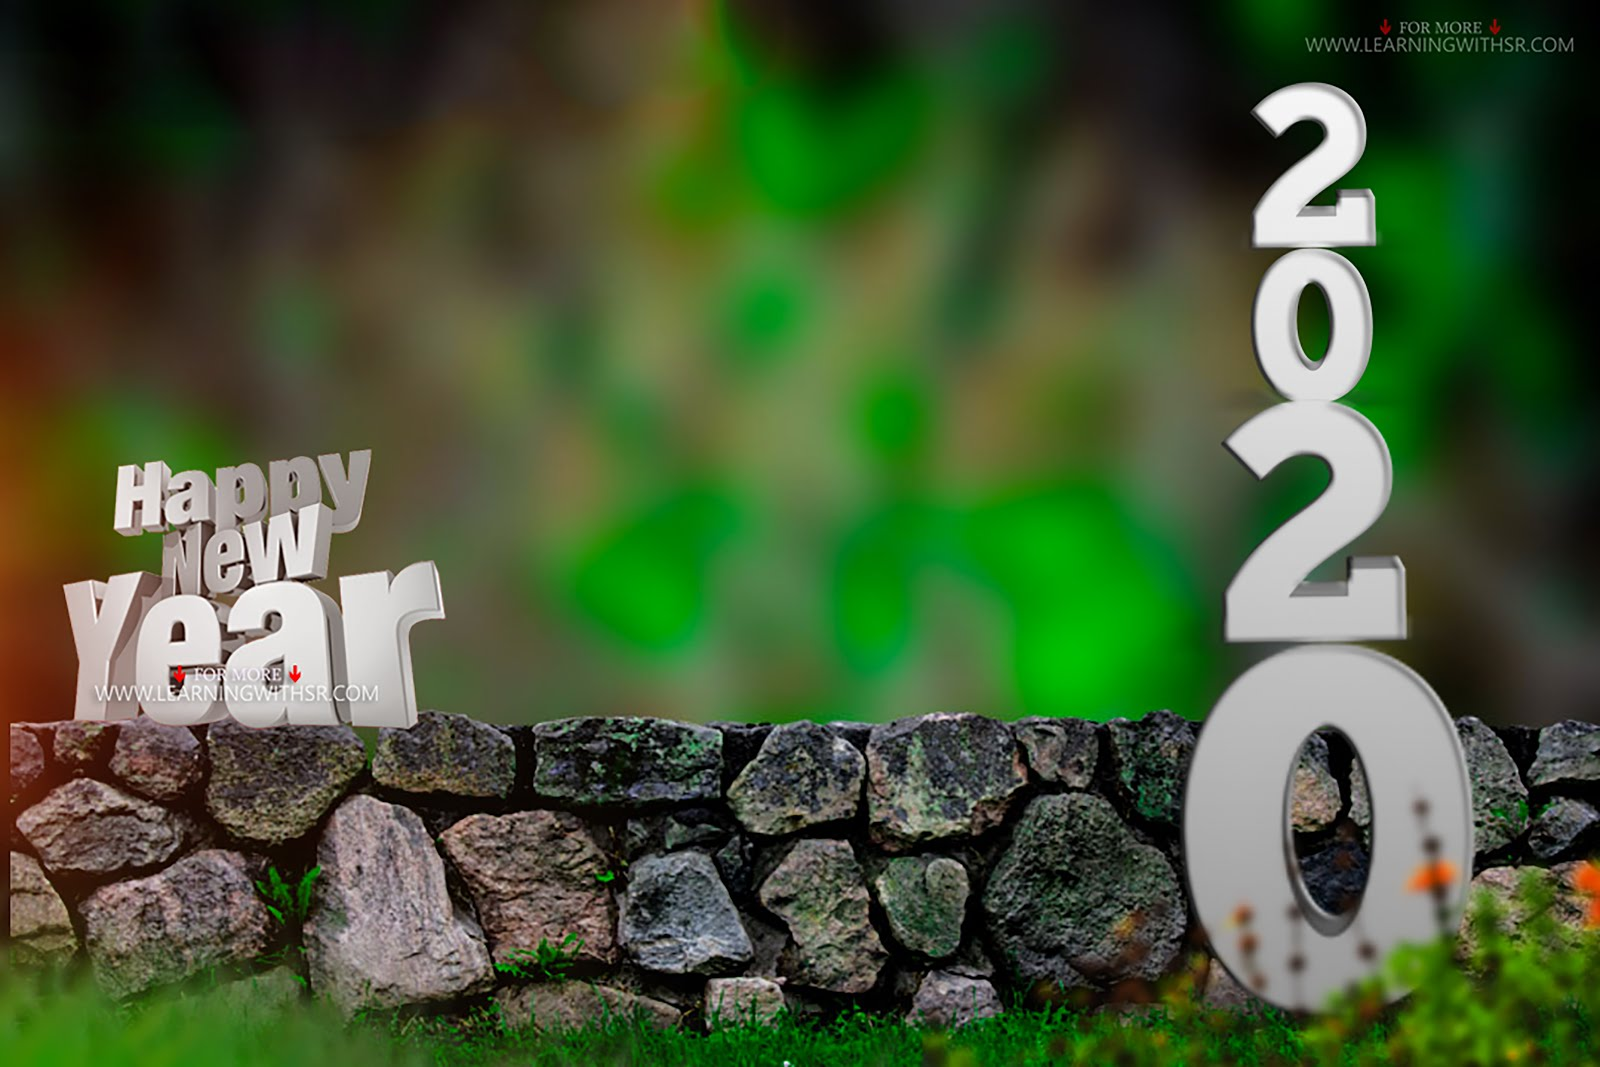 Happy New Year Cb Background 2020 New Full Happy New Year 2020 Cb Backgrounds By Learningwithsr Learningwithsr Polish your personal project or design with these 2021 happy new year transparent png images, make it even more personalized and more attractive. happy new year cb background 2020 new